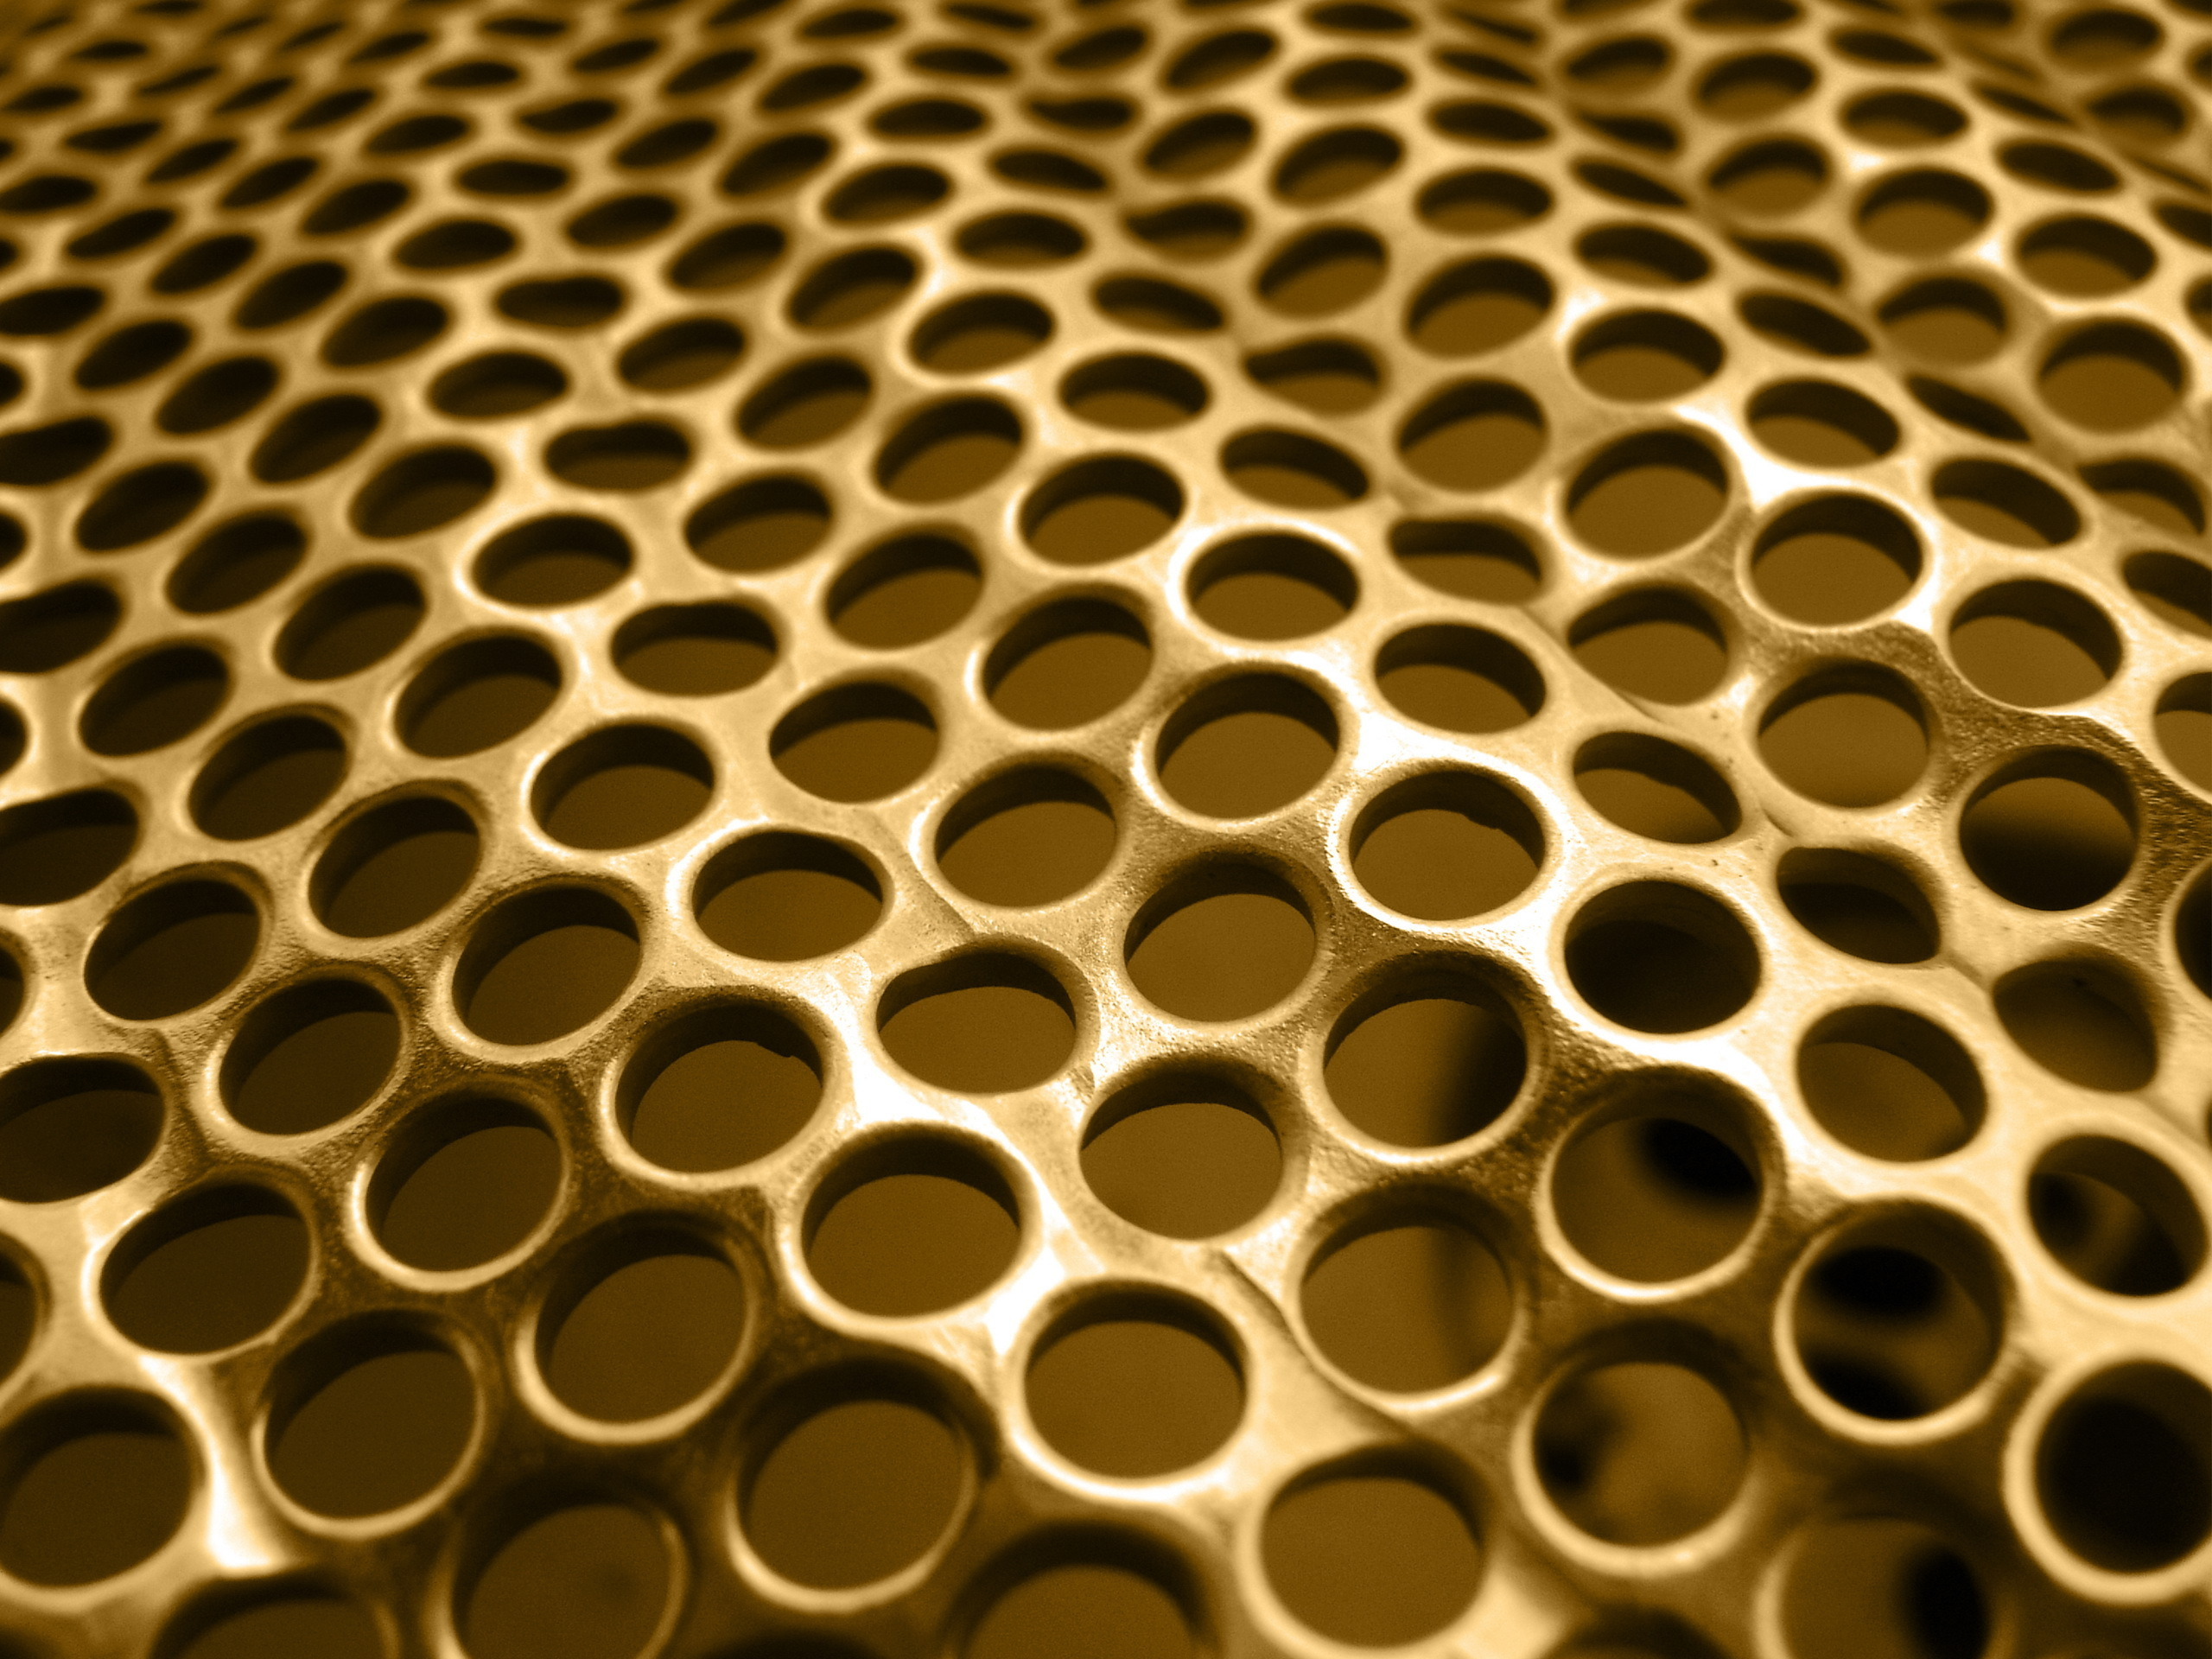 gold metal texture background - photo #32